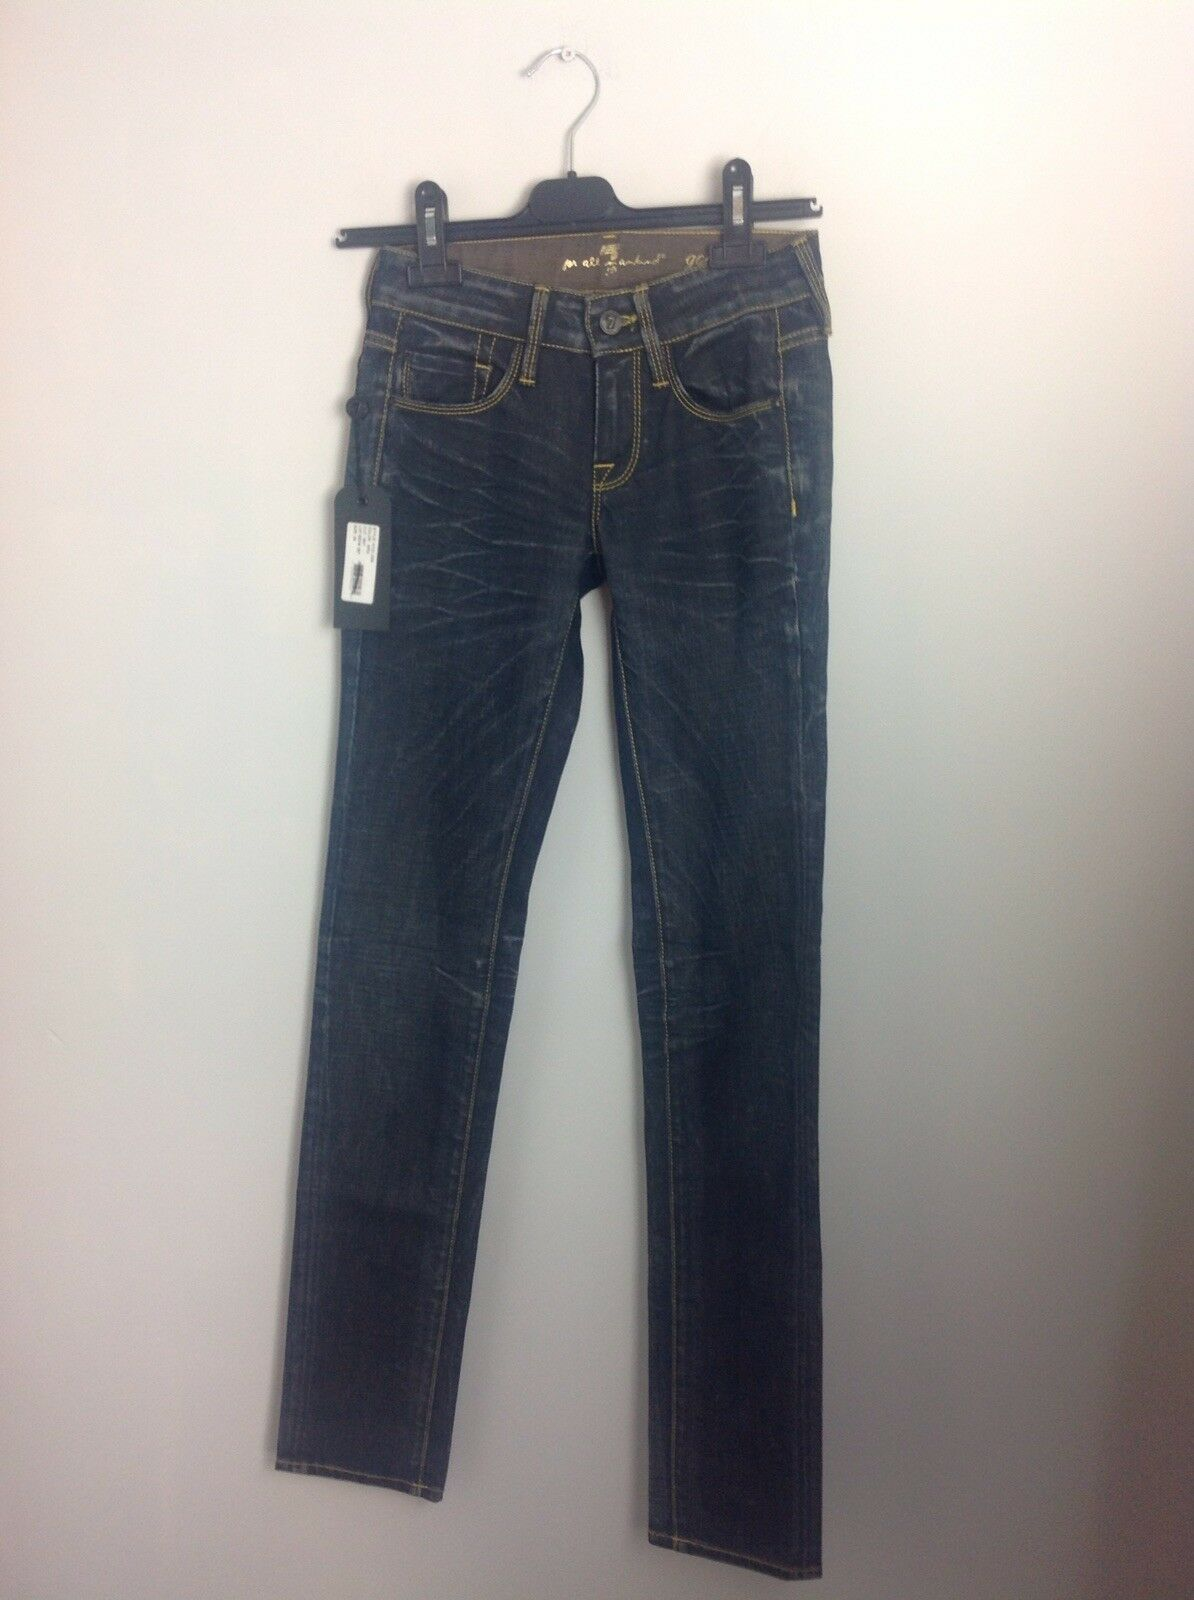 7 For All Mankind GoGo Skinny Jeans. New With Tags. 24 Waist. Super Smart